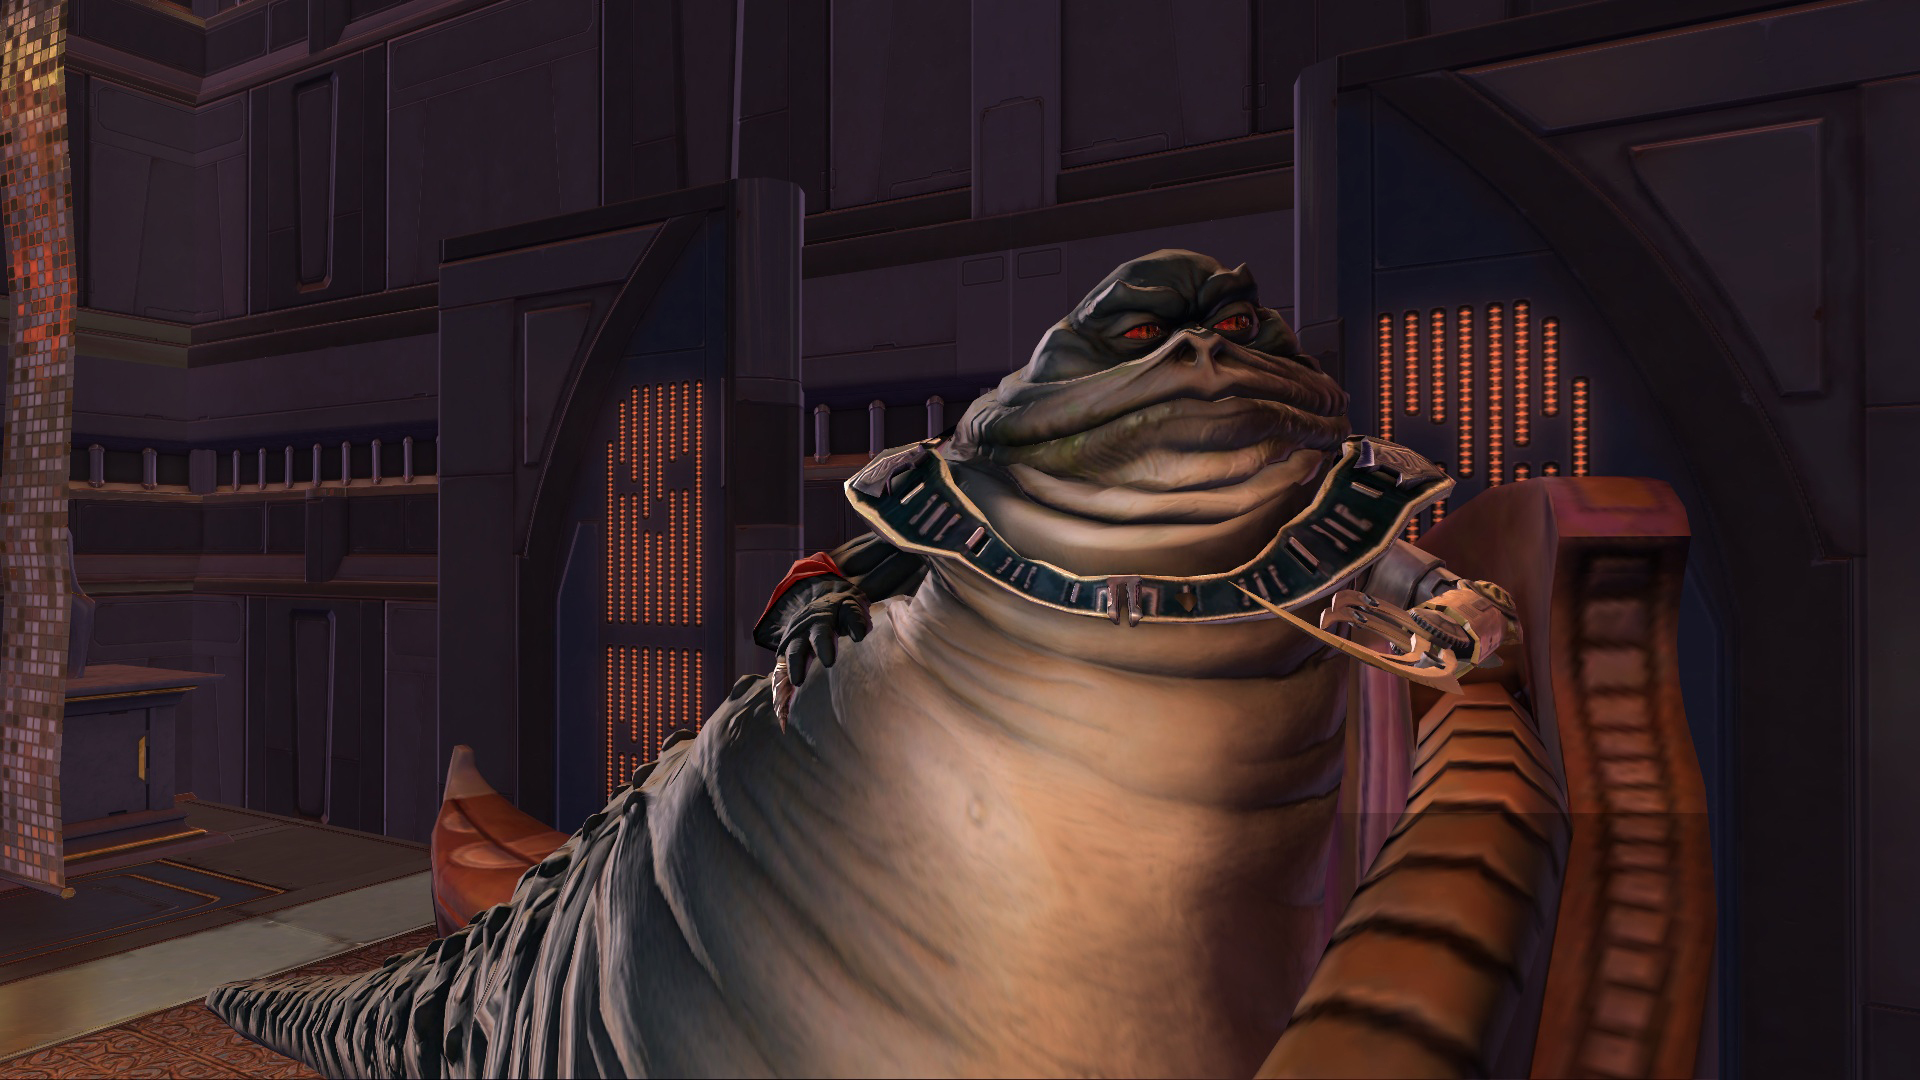 Star Wars: The Old Republic Rise of the Hutt Cartel